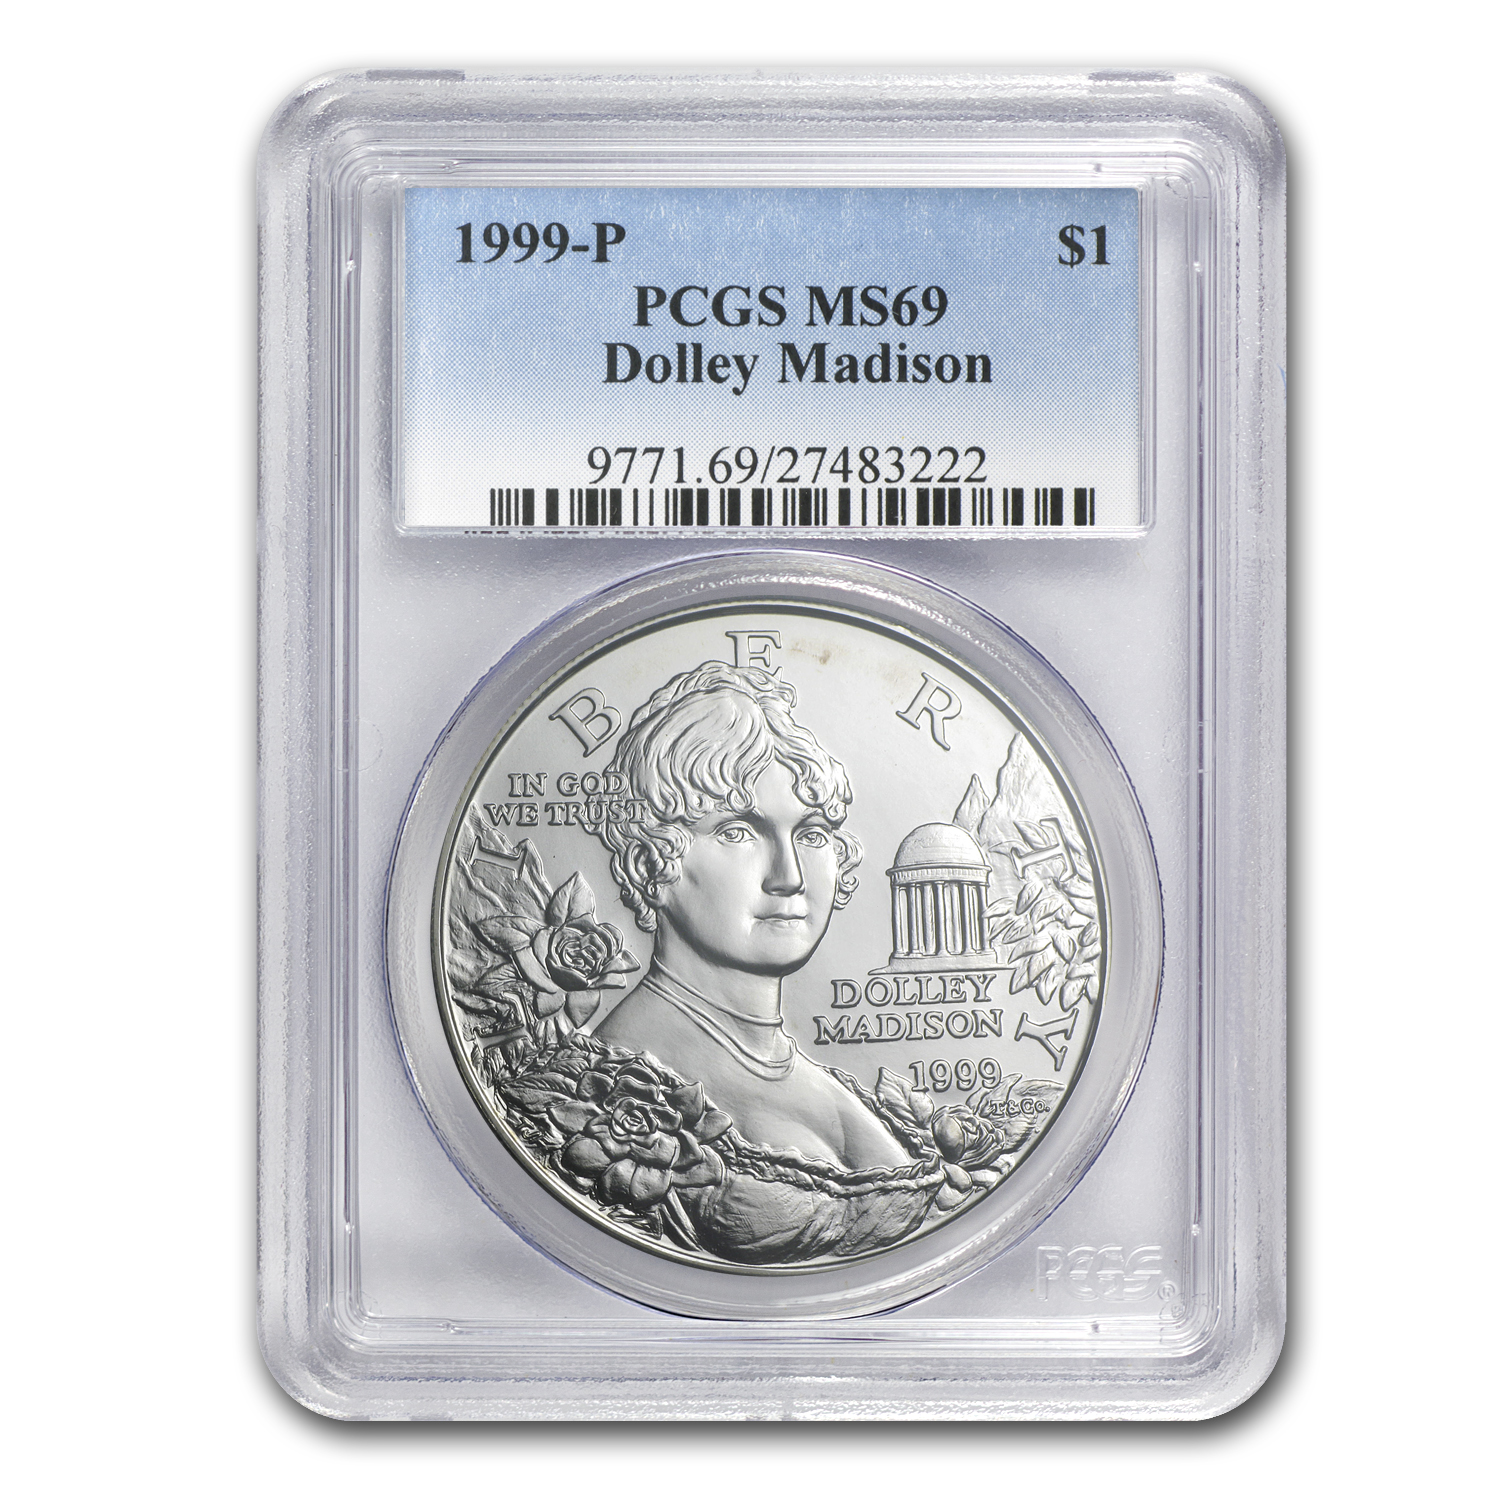 1999-P Dolley Madison $1 Silver Commemorative MS-69 PCGS